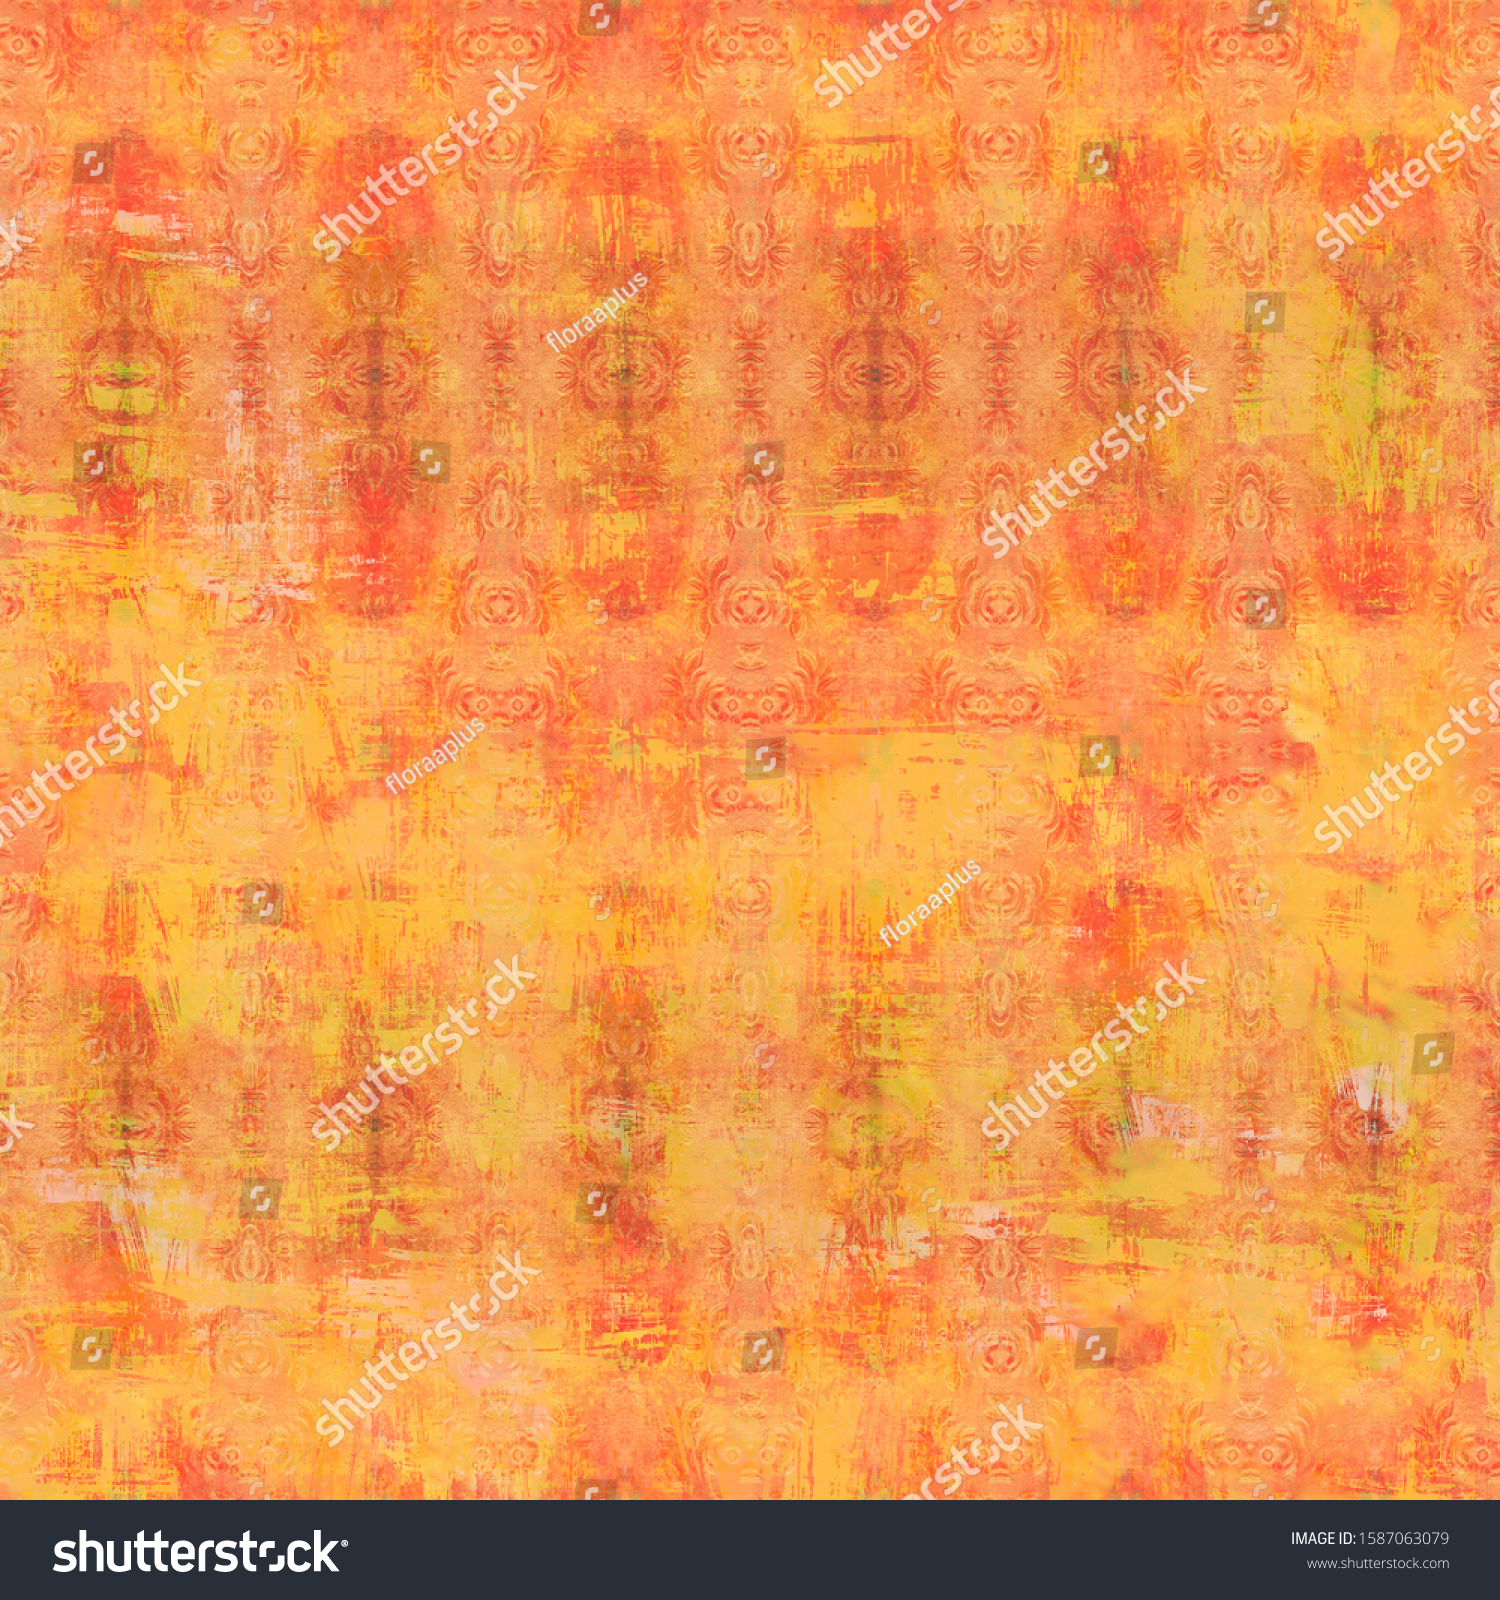 Orange shabby vintage patterned background. Artificially aged bohemian wallpaper in grunge style. Design for handicraft and mass production of various goods.